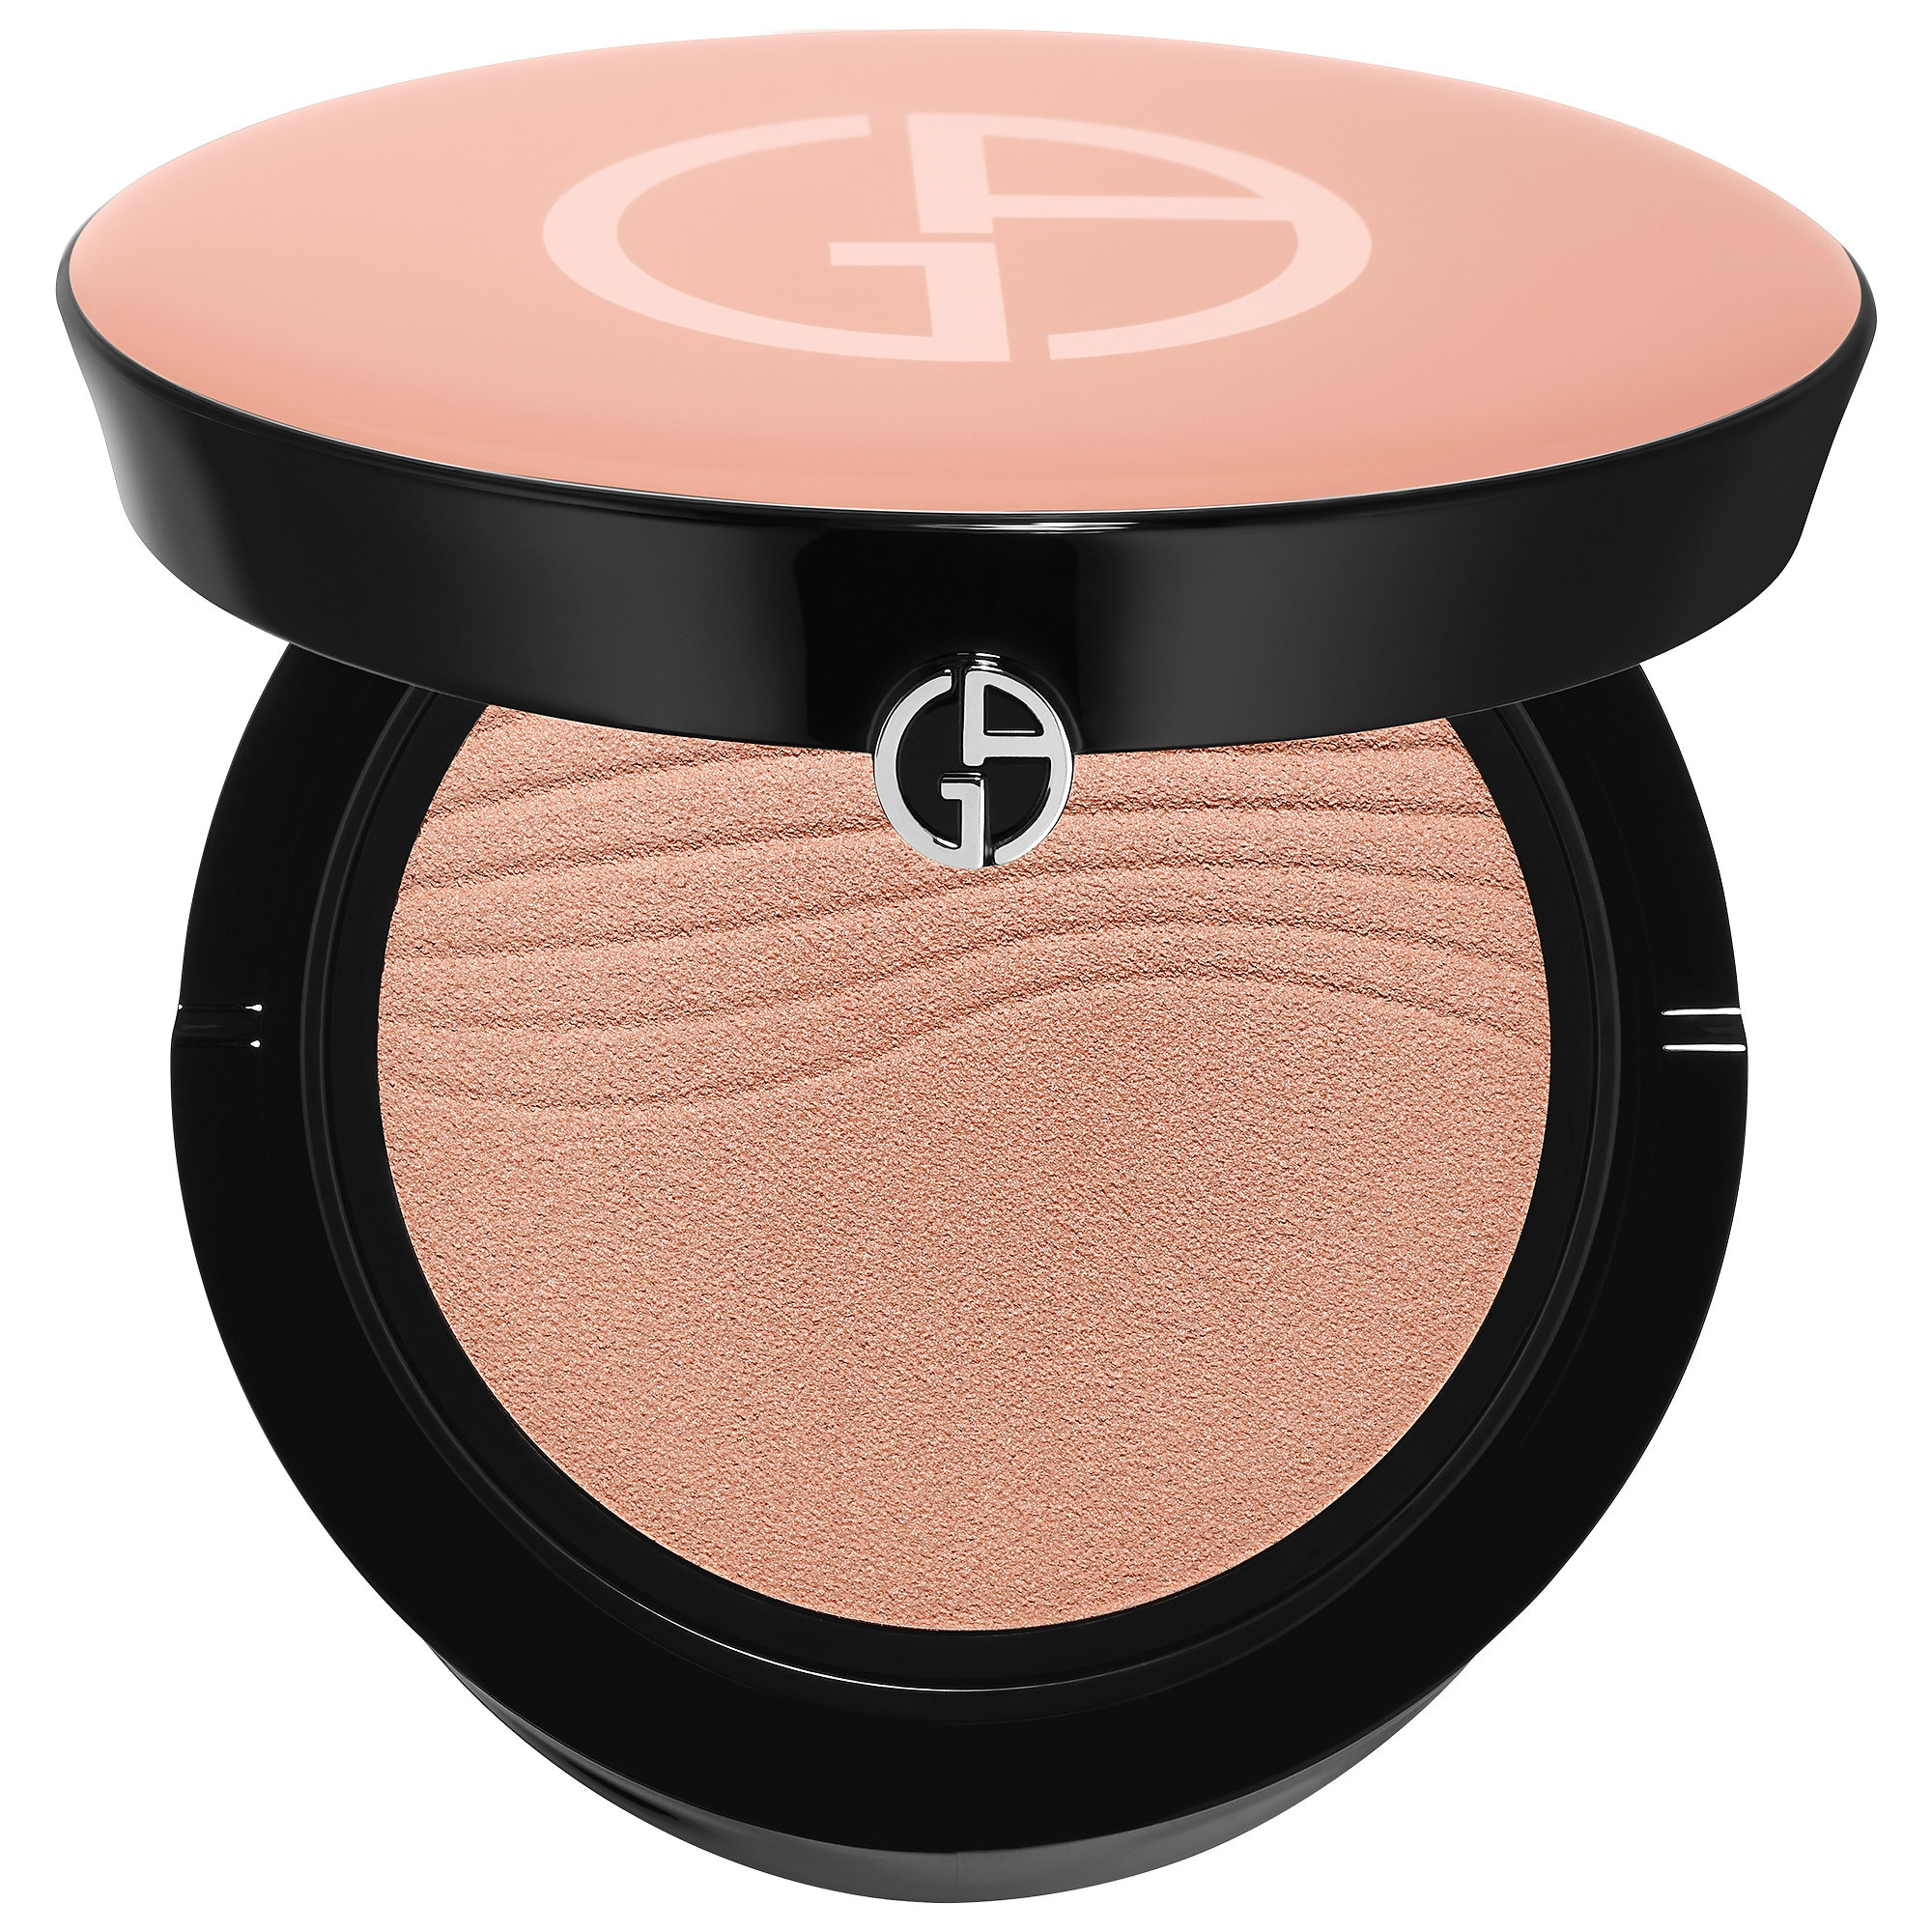 Armani Beauty - Neo Nude Fusion Powder